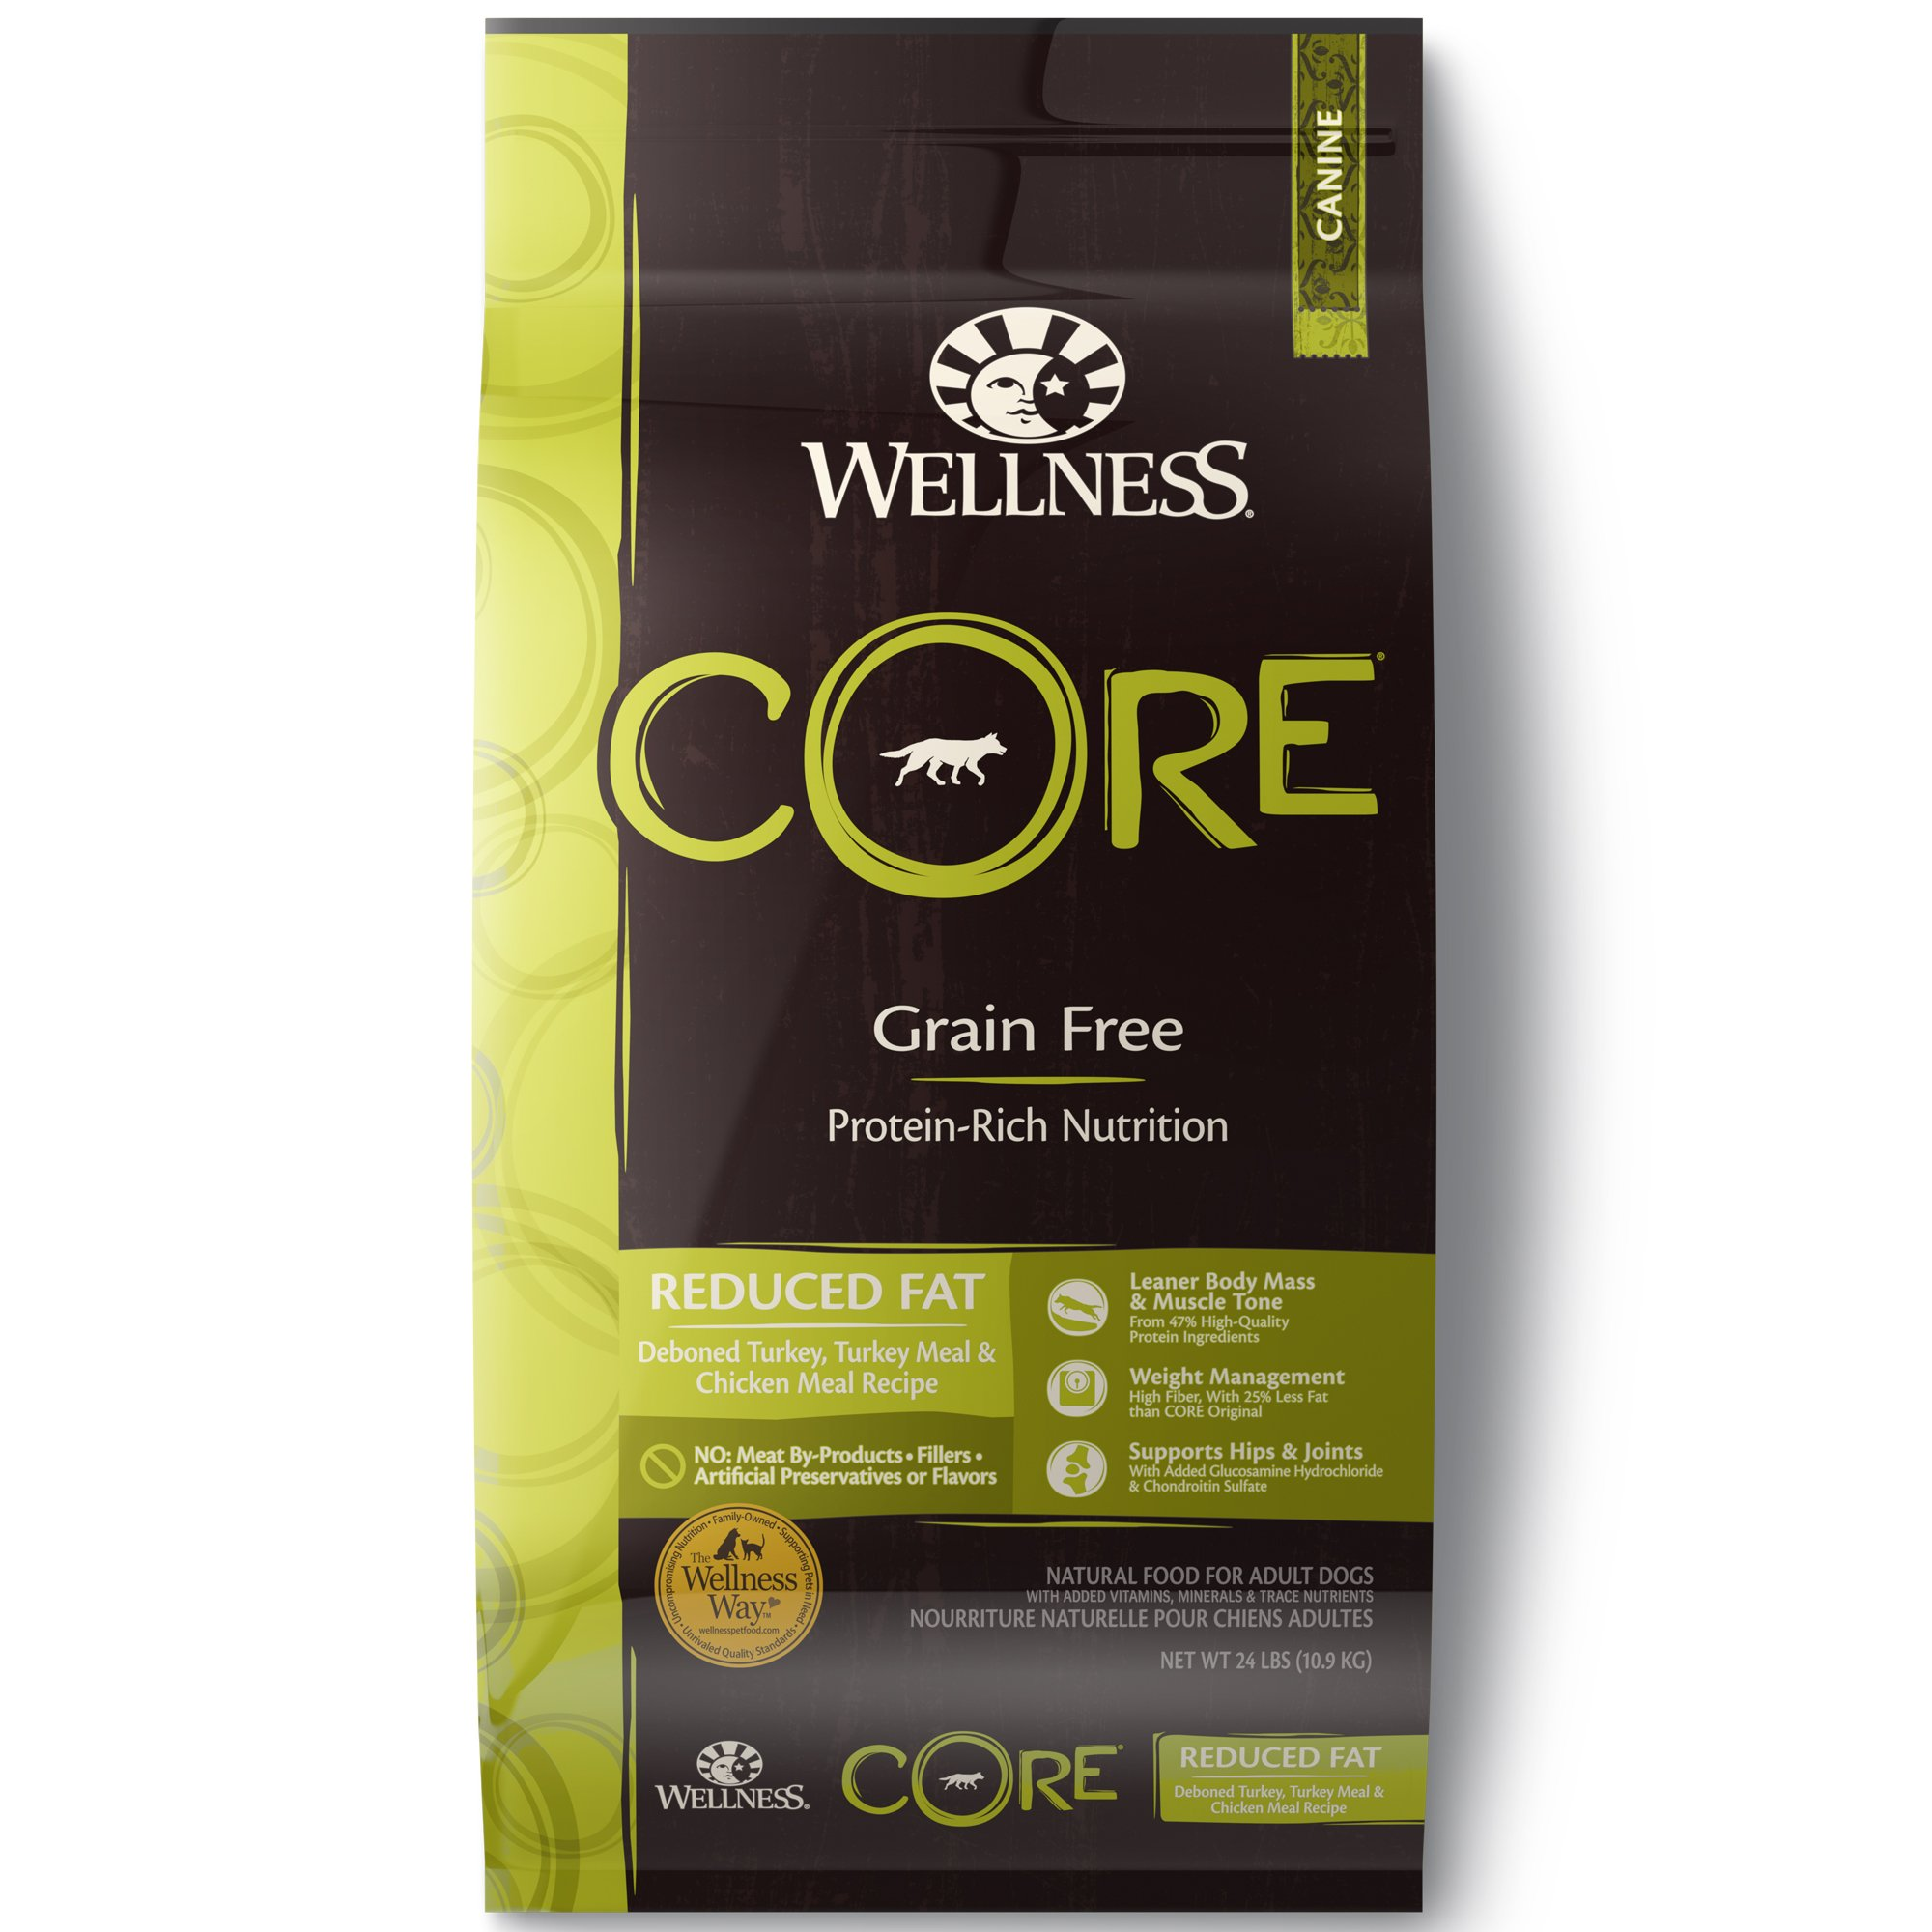 Wellness CORE Natural Grain Free Reduced Fat Dry Dog Food, 24 lbs.